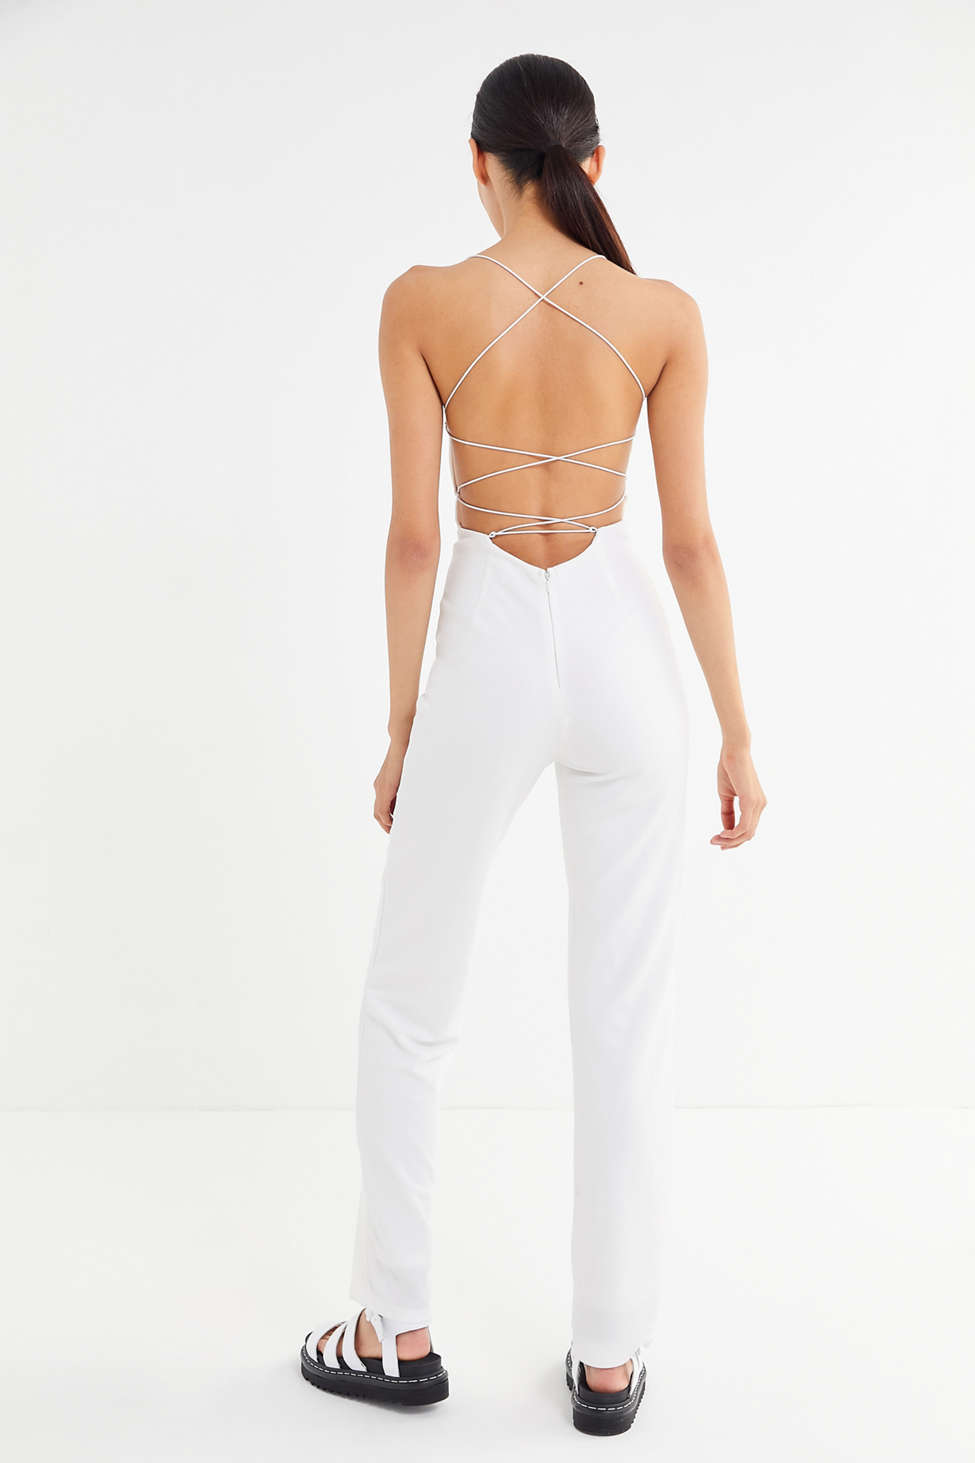 Tiger Mist Blanche Strappy Back Straight Leg Jumpsuit by Tiger Mist